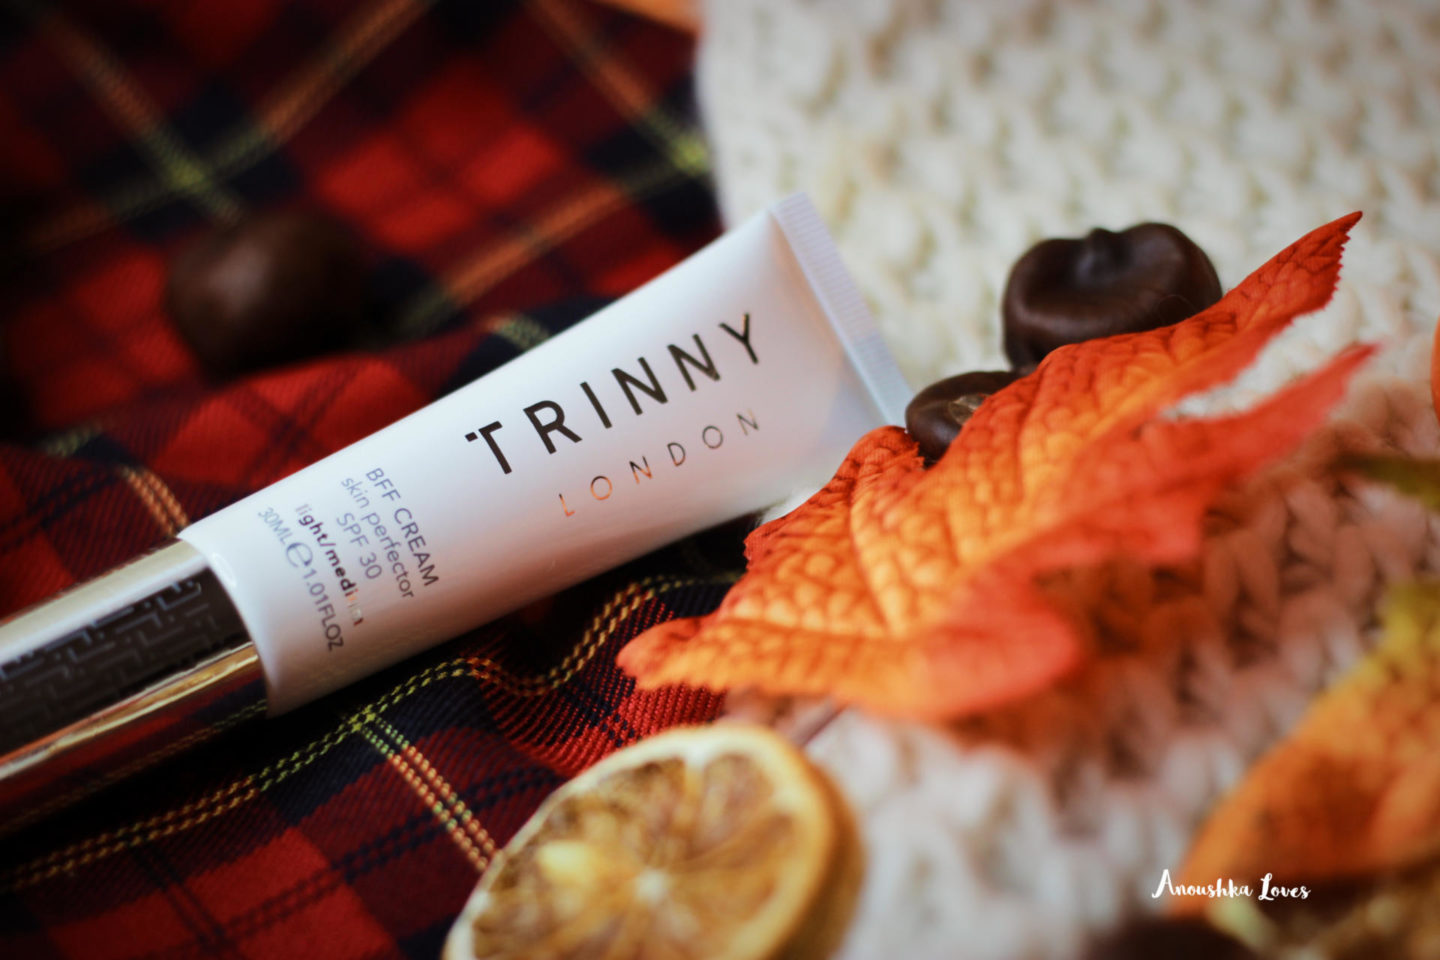 Brand Focus: Trinny London